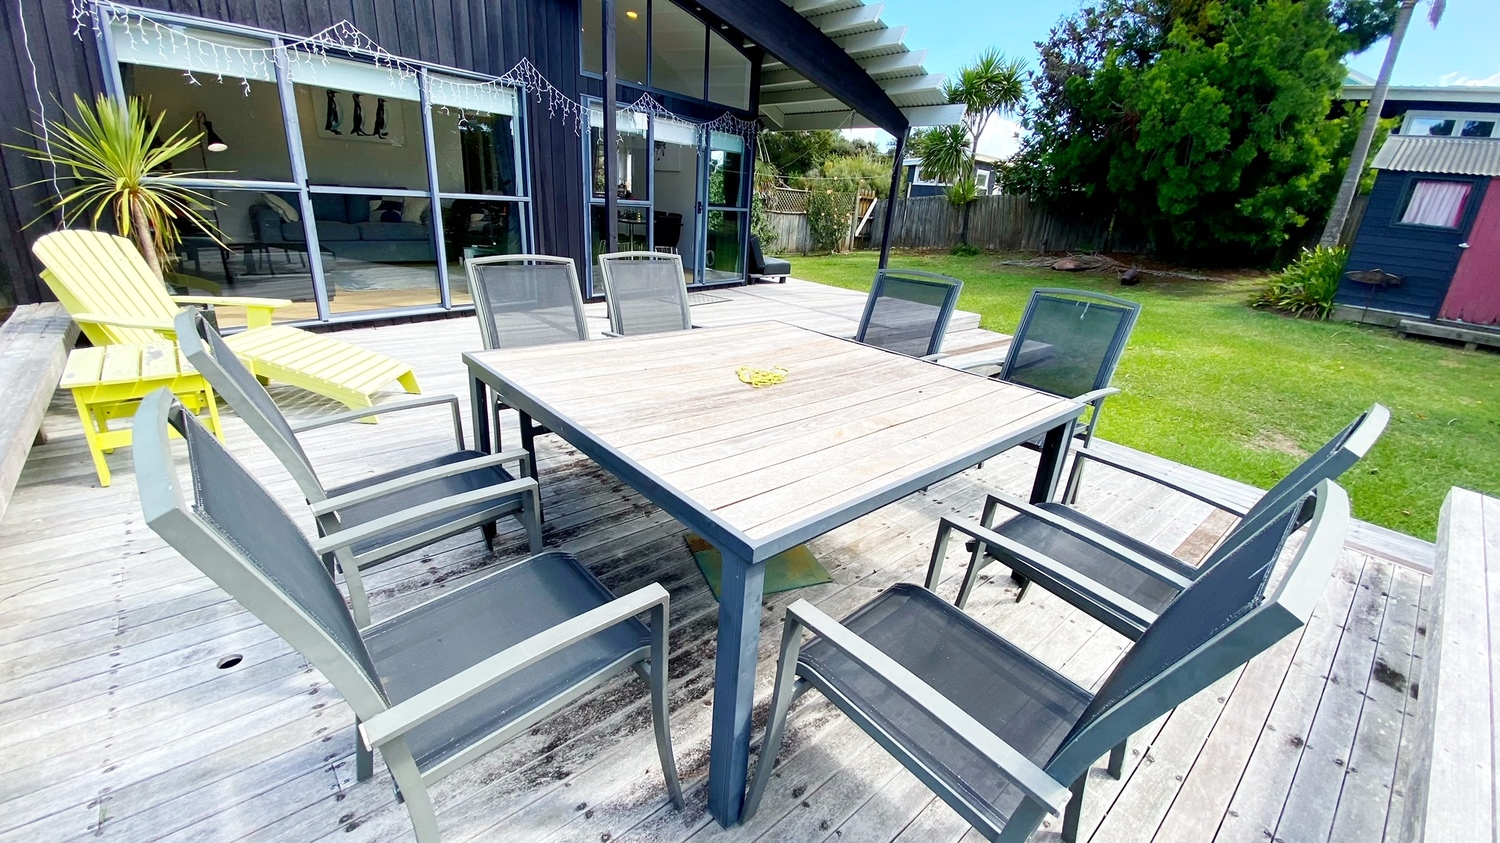 6._Woodlands_deck_with_dining_and_lounger_looking_towards_house.msg_1500x843.jpg